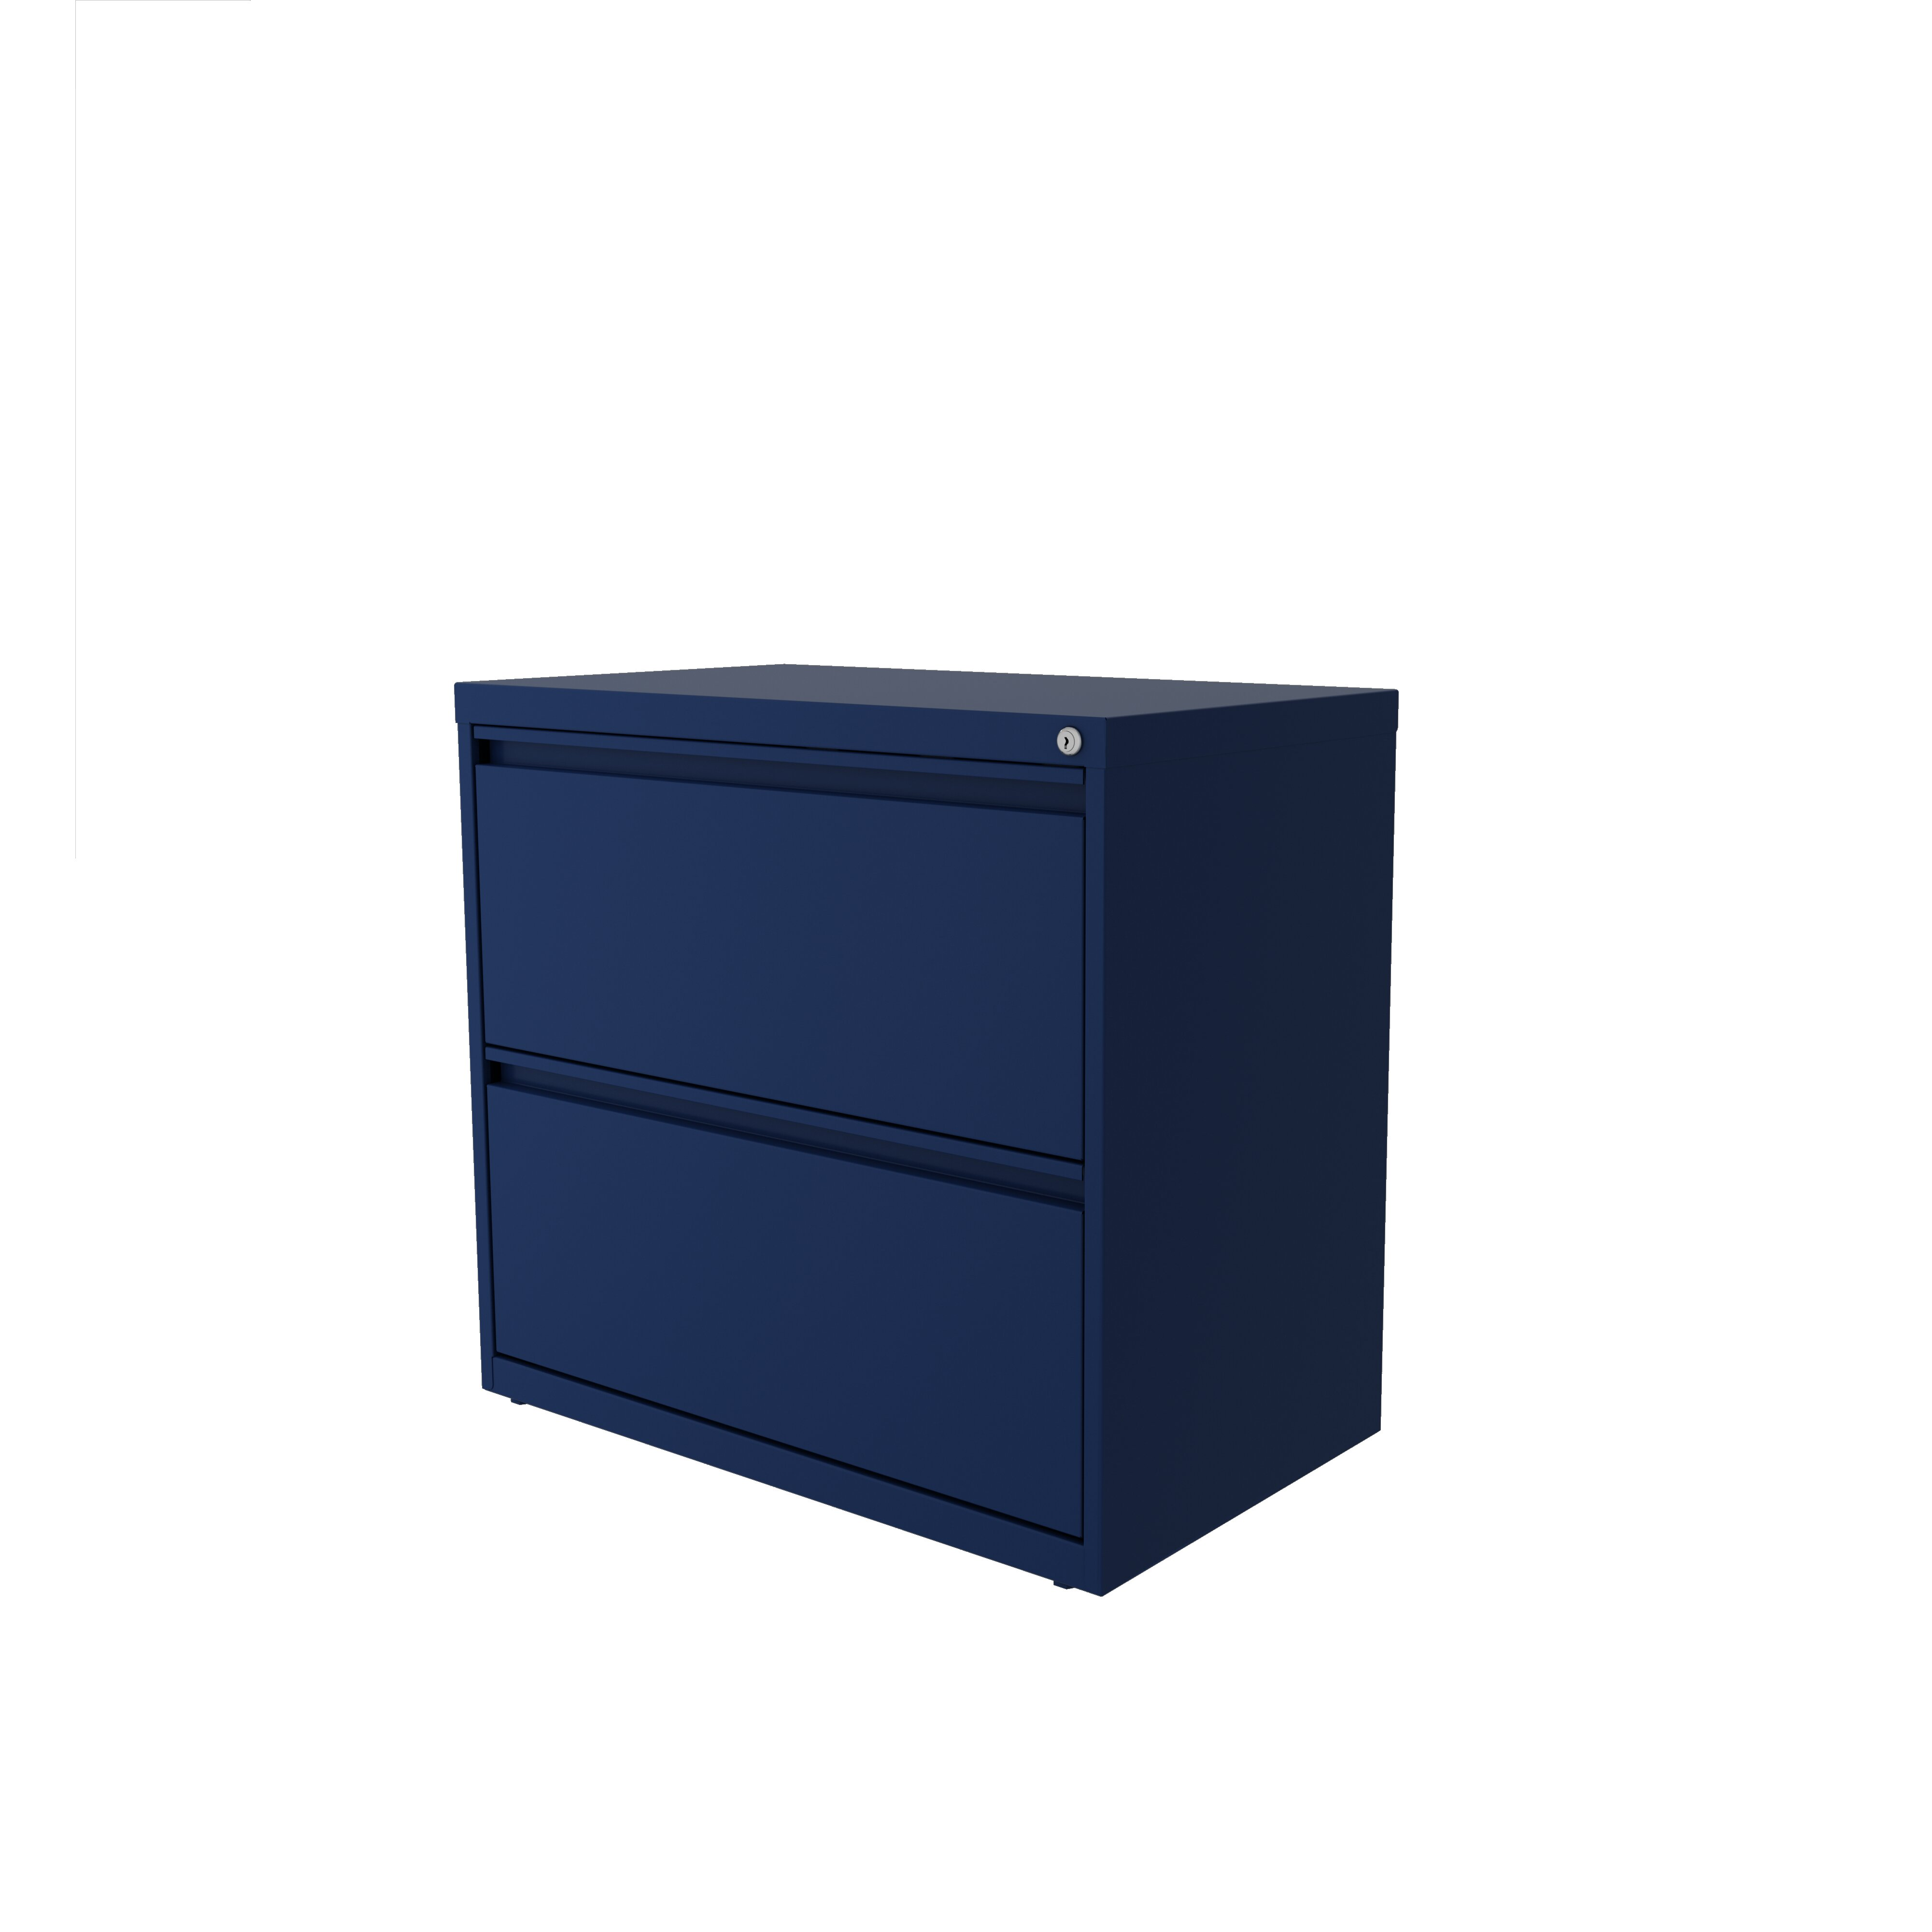 Blue Lateral Filing Cabinets You Ll Love In 2021 Wayfair